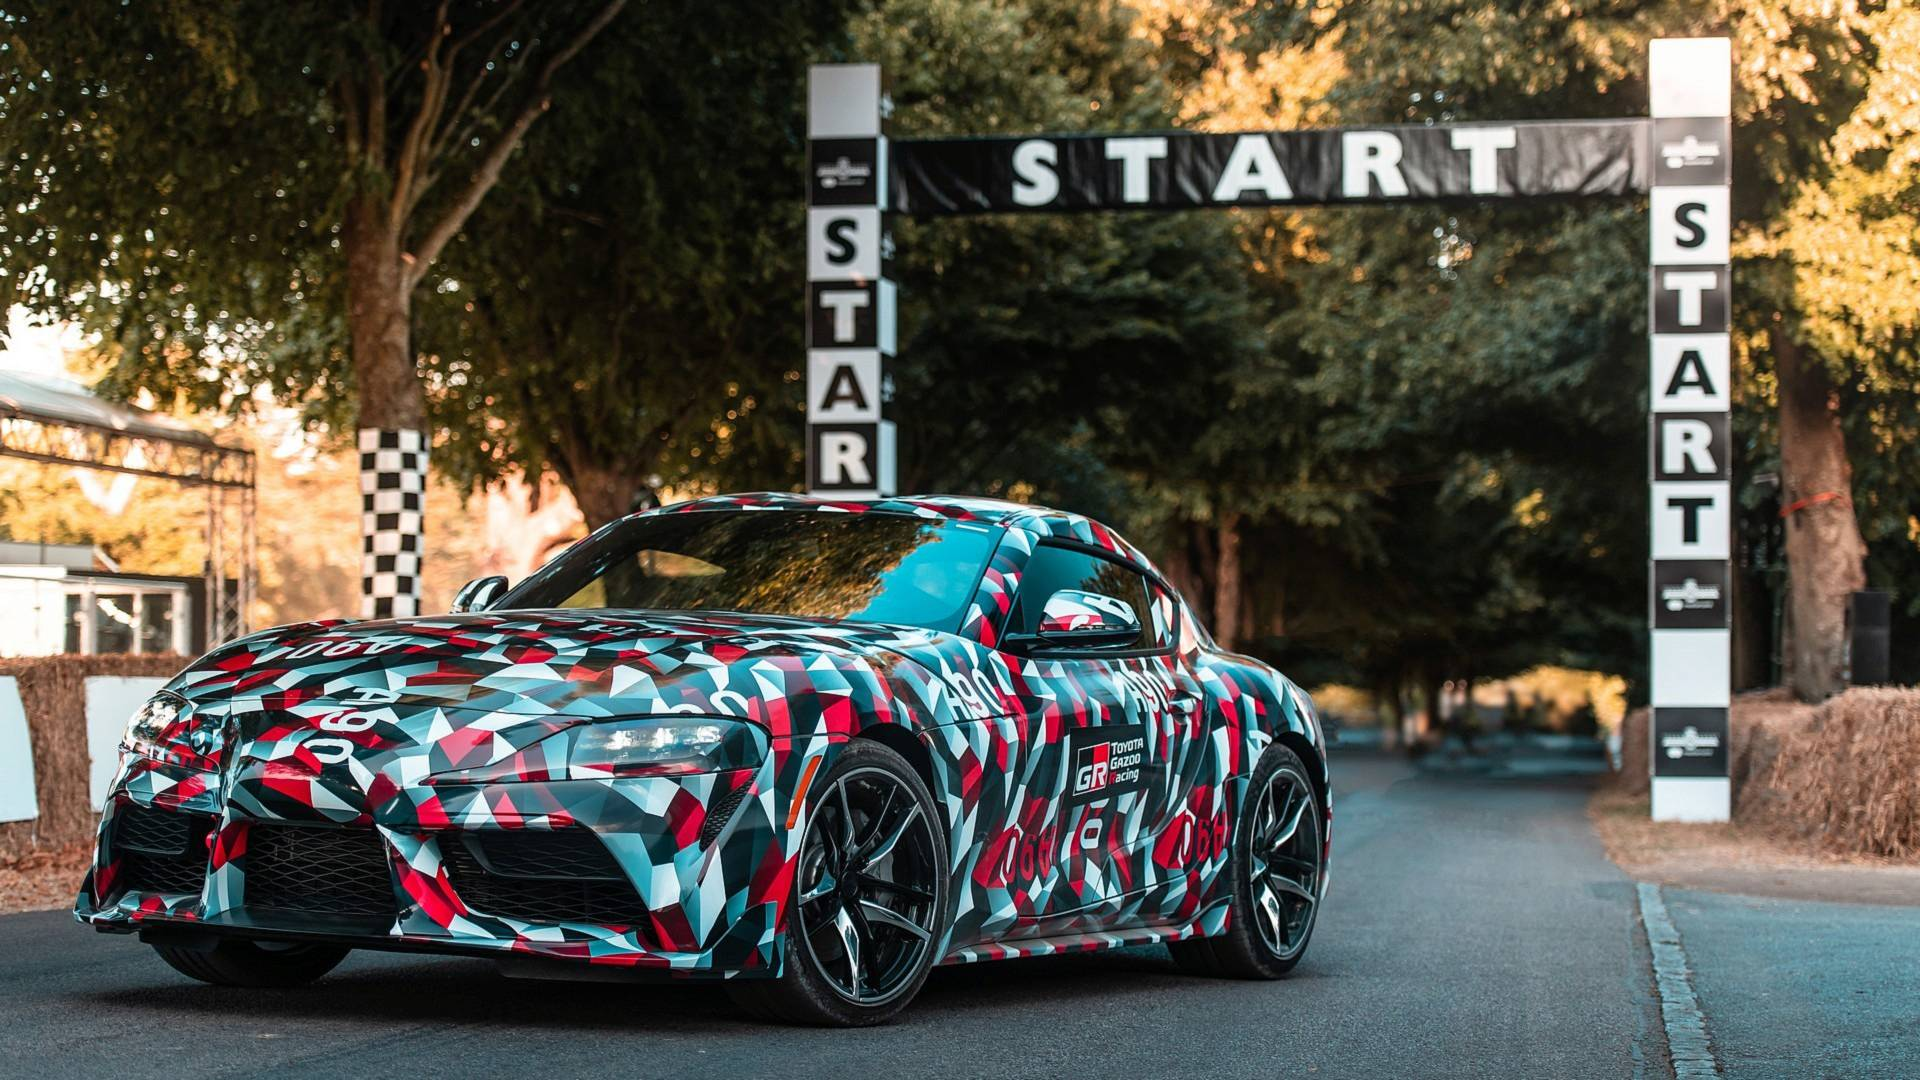 2019 Toyota Supra Interior Spied in Production Trim, Shows ...